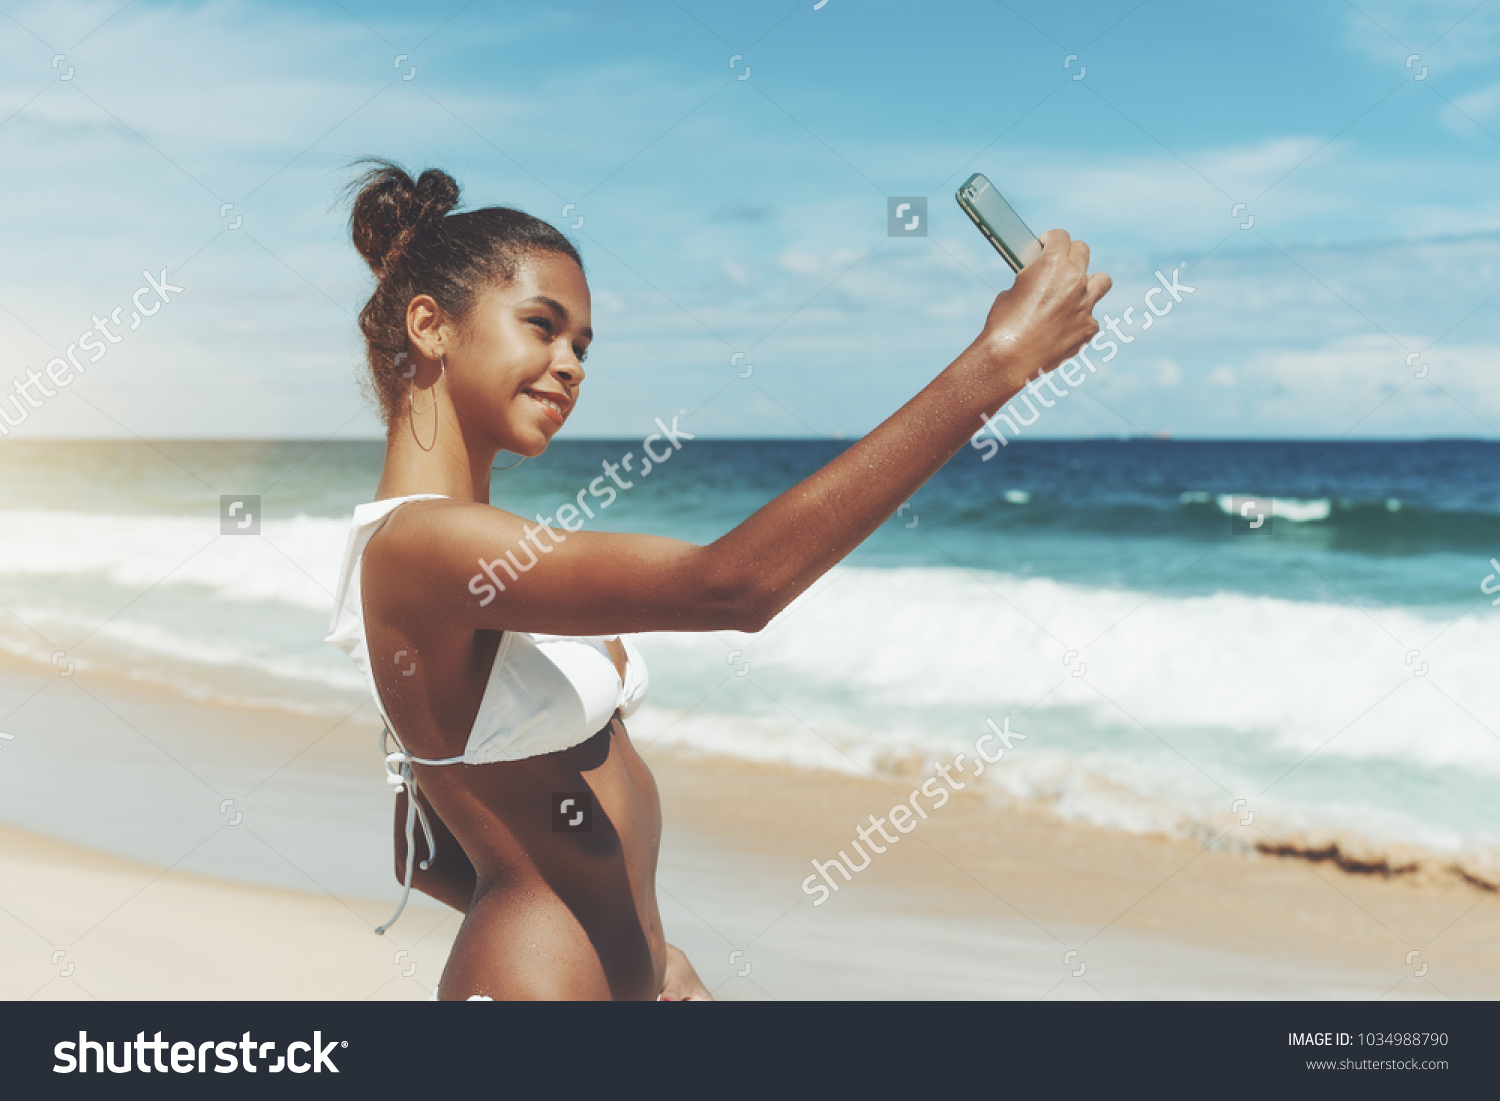 Young sexy Brazilian model girl is taking selfie while standing on the  ocean beach after swimming